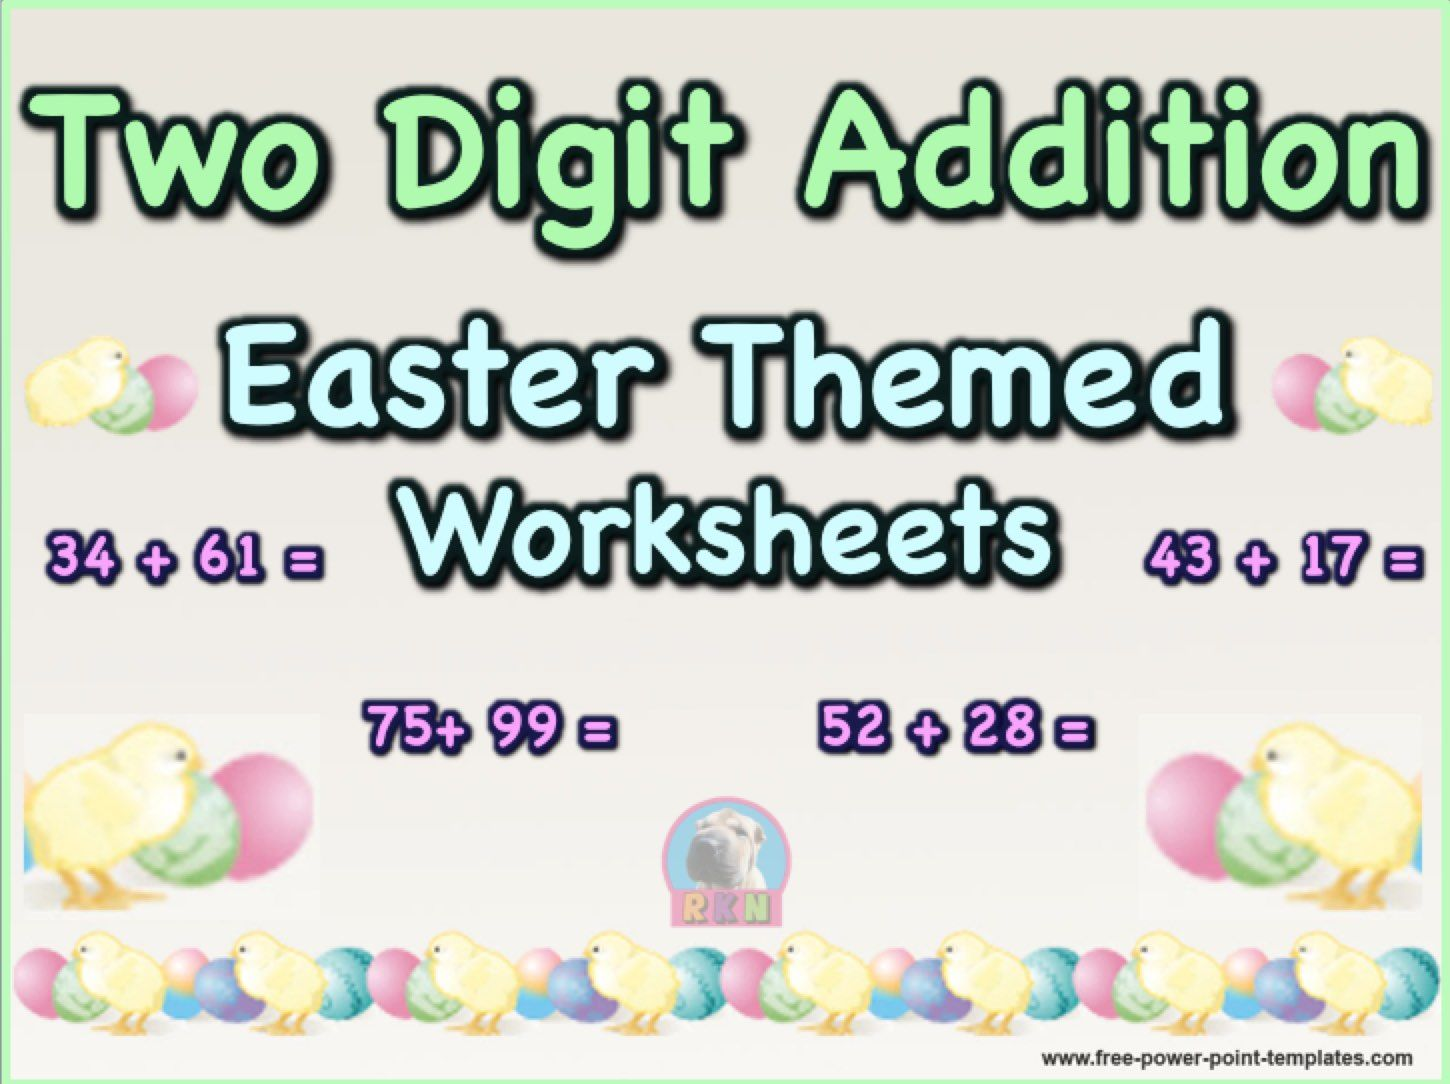 This Is A Packet Of Two Digit Addition Math Worksheets